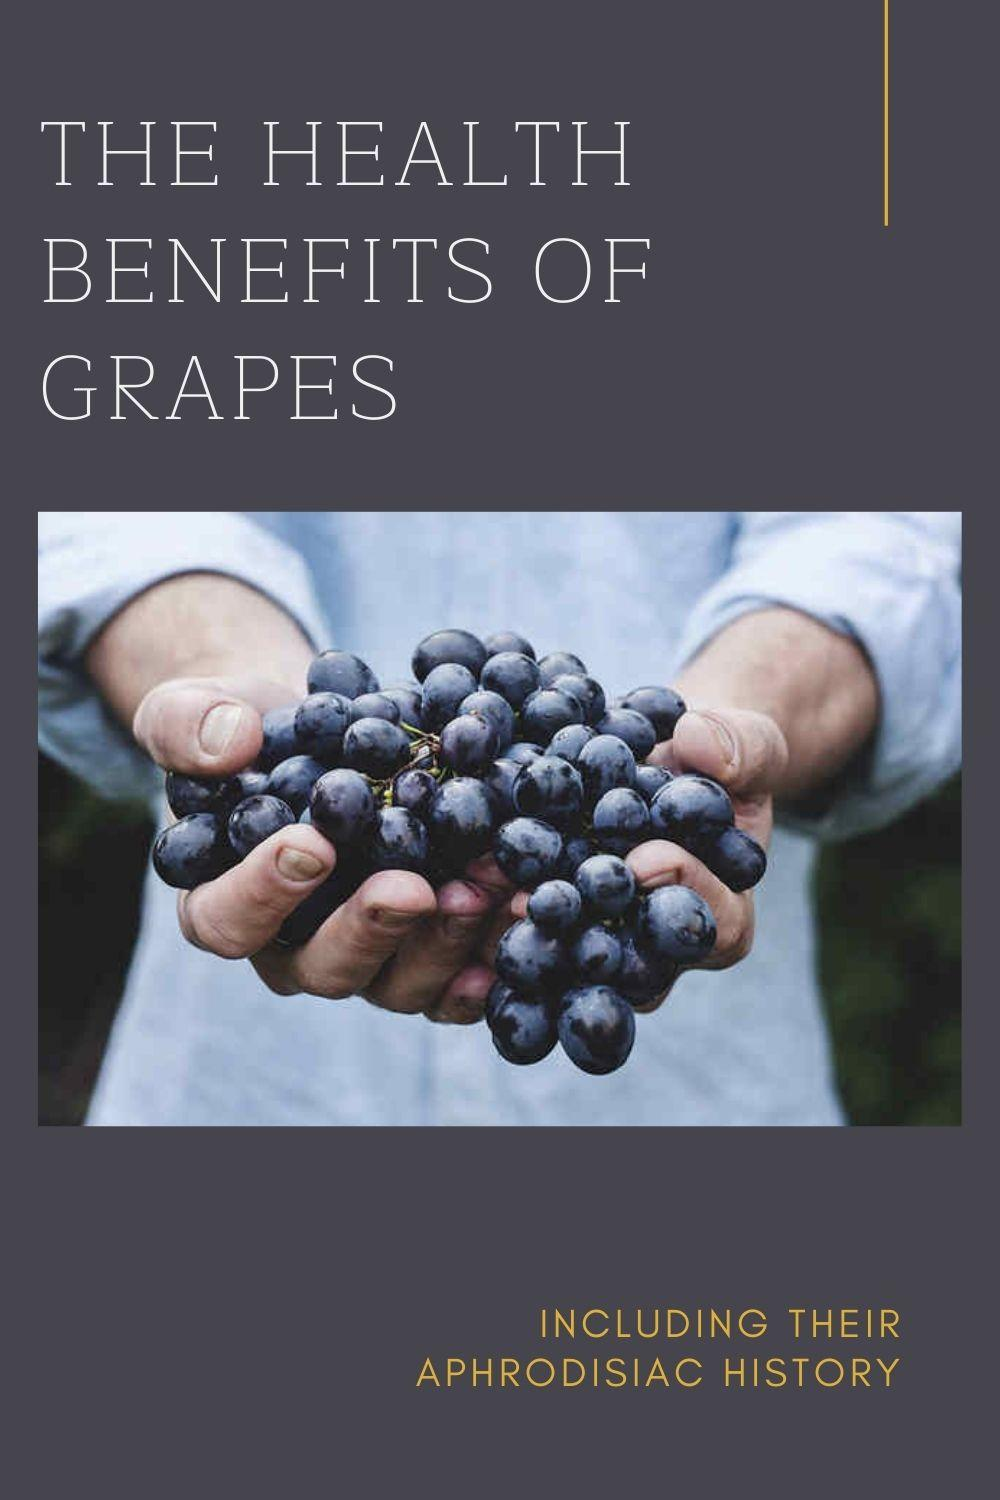 The Health Benefits of Grapes graphic